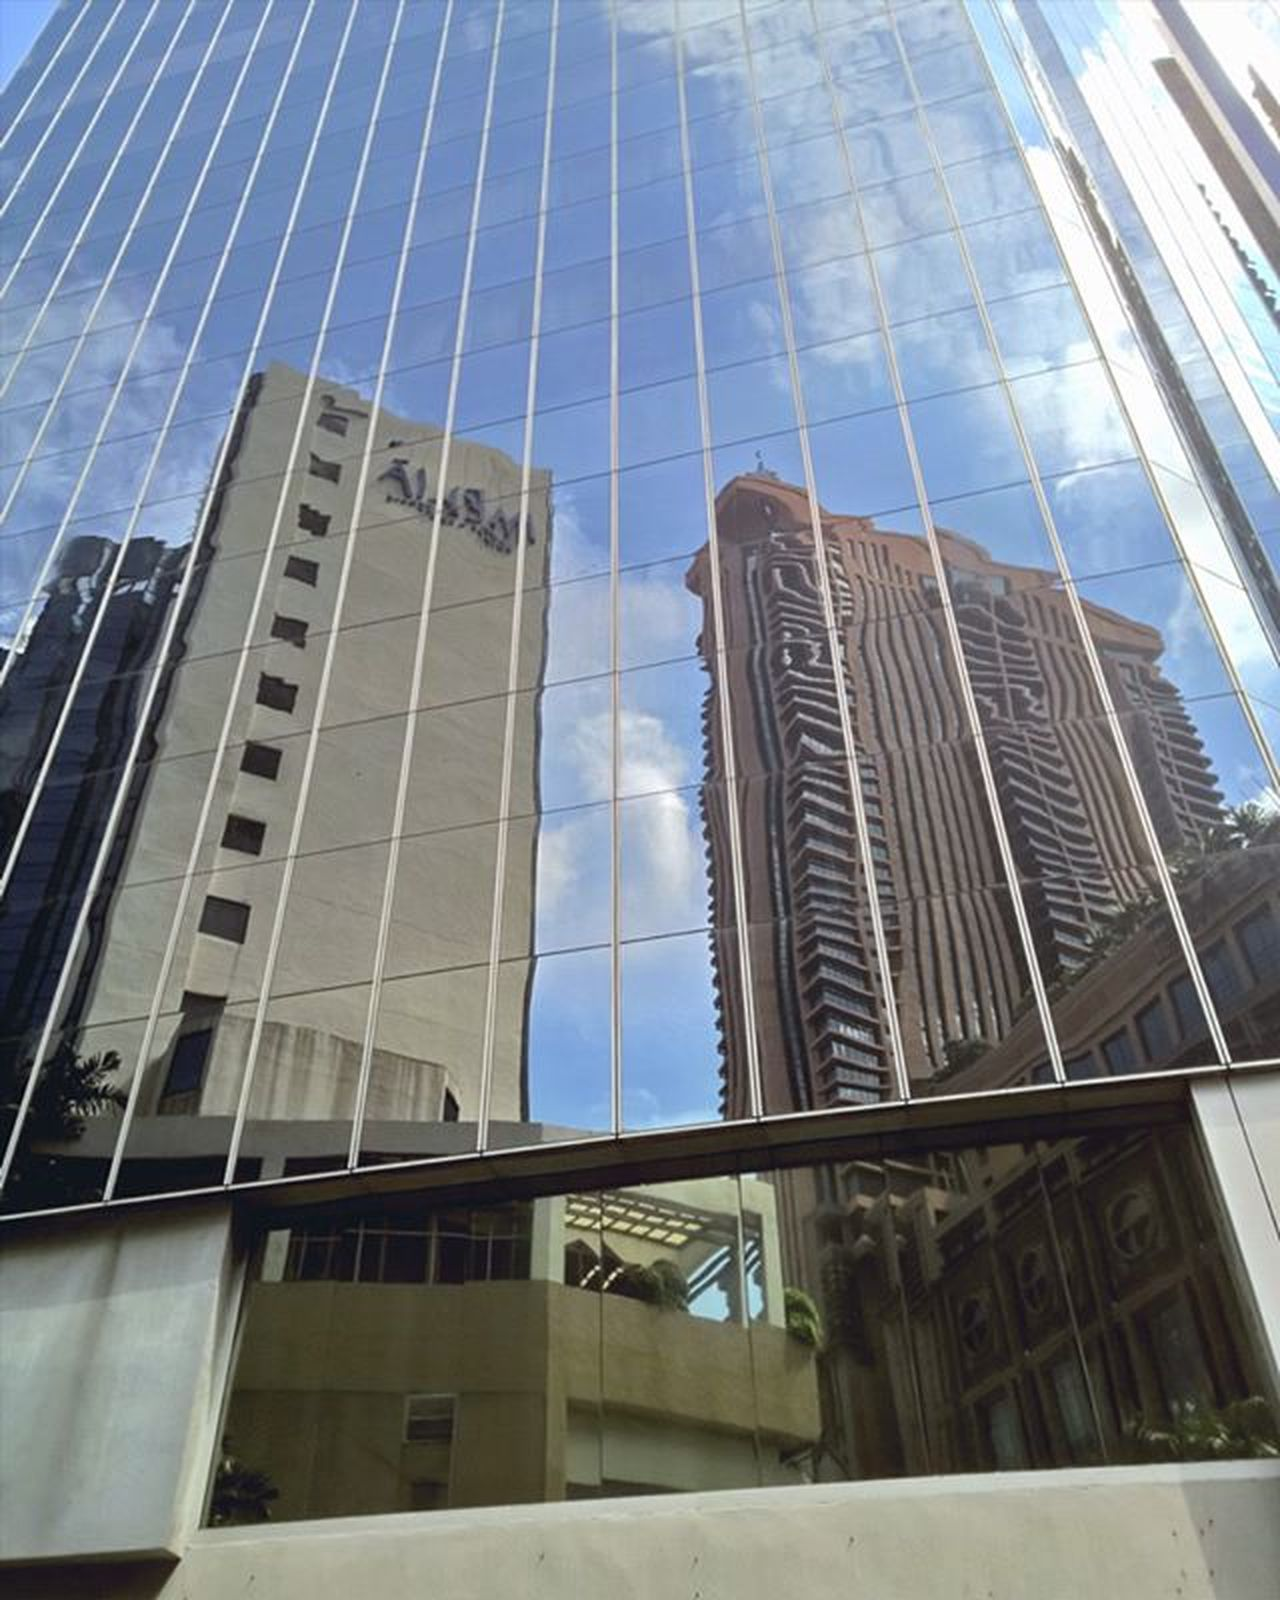 Lines and reflections of Kuala Lumpur. Lumia930 Mobilephotography WindowsPhonePhotography WeLoveLumia ShotOnMyLumia  Lumiaography Theappwhisperer Makemoments MoreLumiaLove GoodRadShot TheLumians Fhotoroom Lumia PicHitMe EyeEm EyeEm_O MenchFeature Photography Nban NbanFamily Pixelpanda Visitorg Aop_Lab Natgeo Natgeotravel NatGeoYourShot AdventureVisuals Cambodia PhnomPenh My_Mobile_Photography @fhotoroom_ @thelumians @lumiavoices @pichitme @windowsphonephotography @microsoftwindowsphone @microsoftlumiaphotography @mobile_photography @moment_lens @goodradshot @mobilephotoblog @street_hunters @lumia @pixel_panda_ @eyeem_o @photocrowd @photoadvices @nothingbutanokia @worldphotoorg